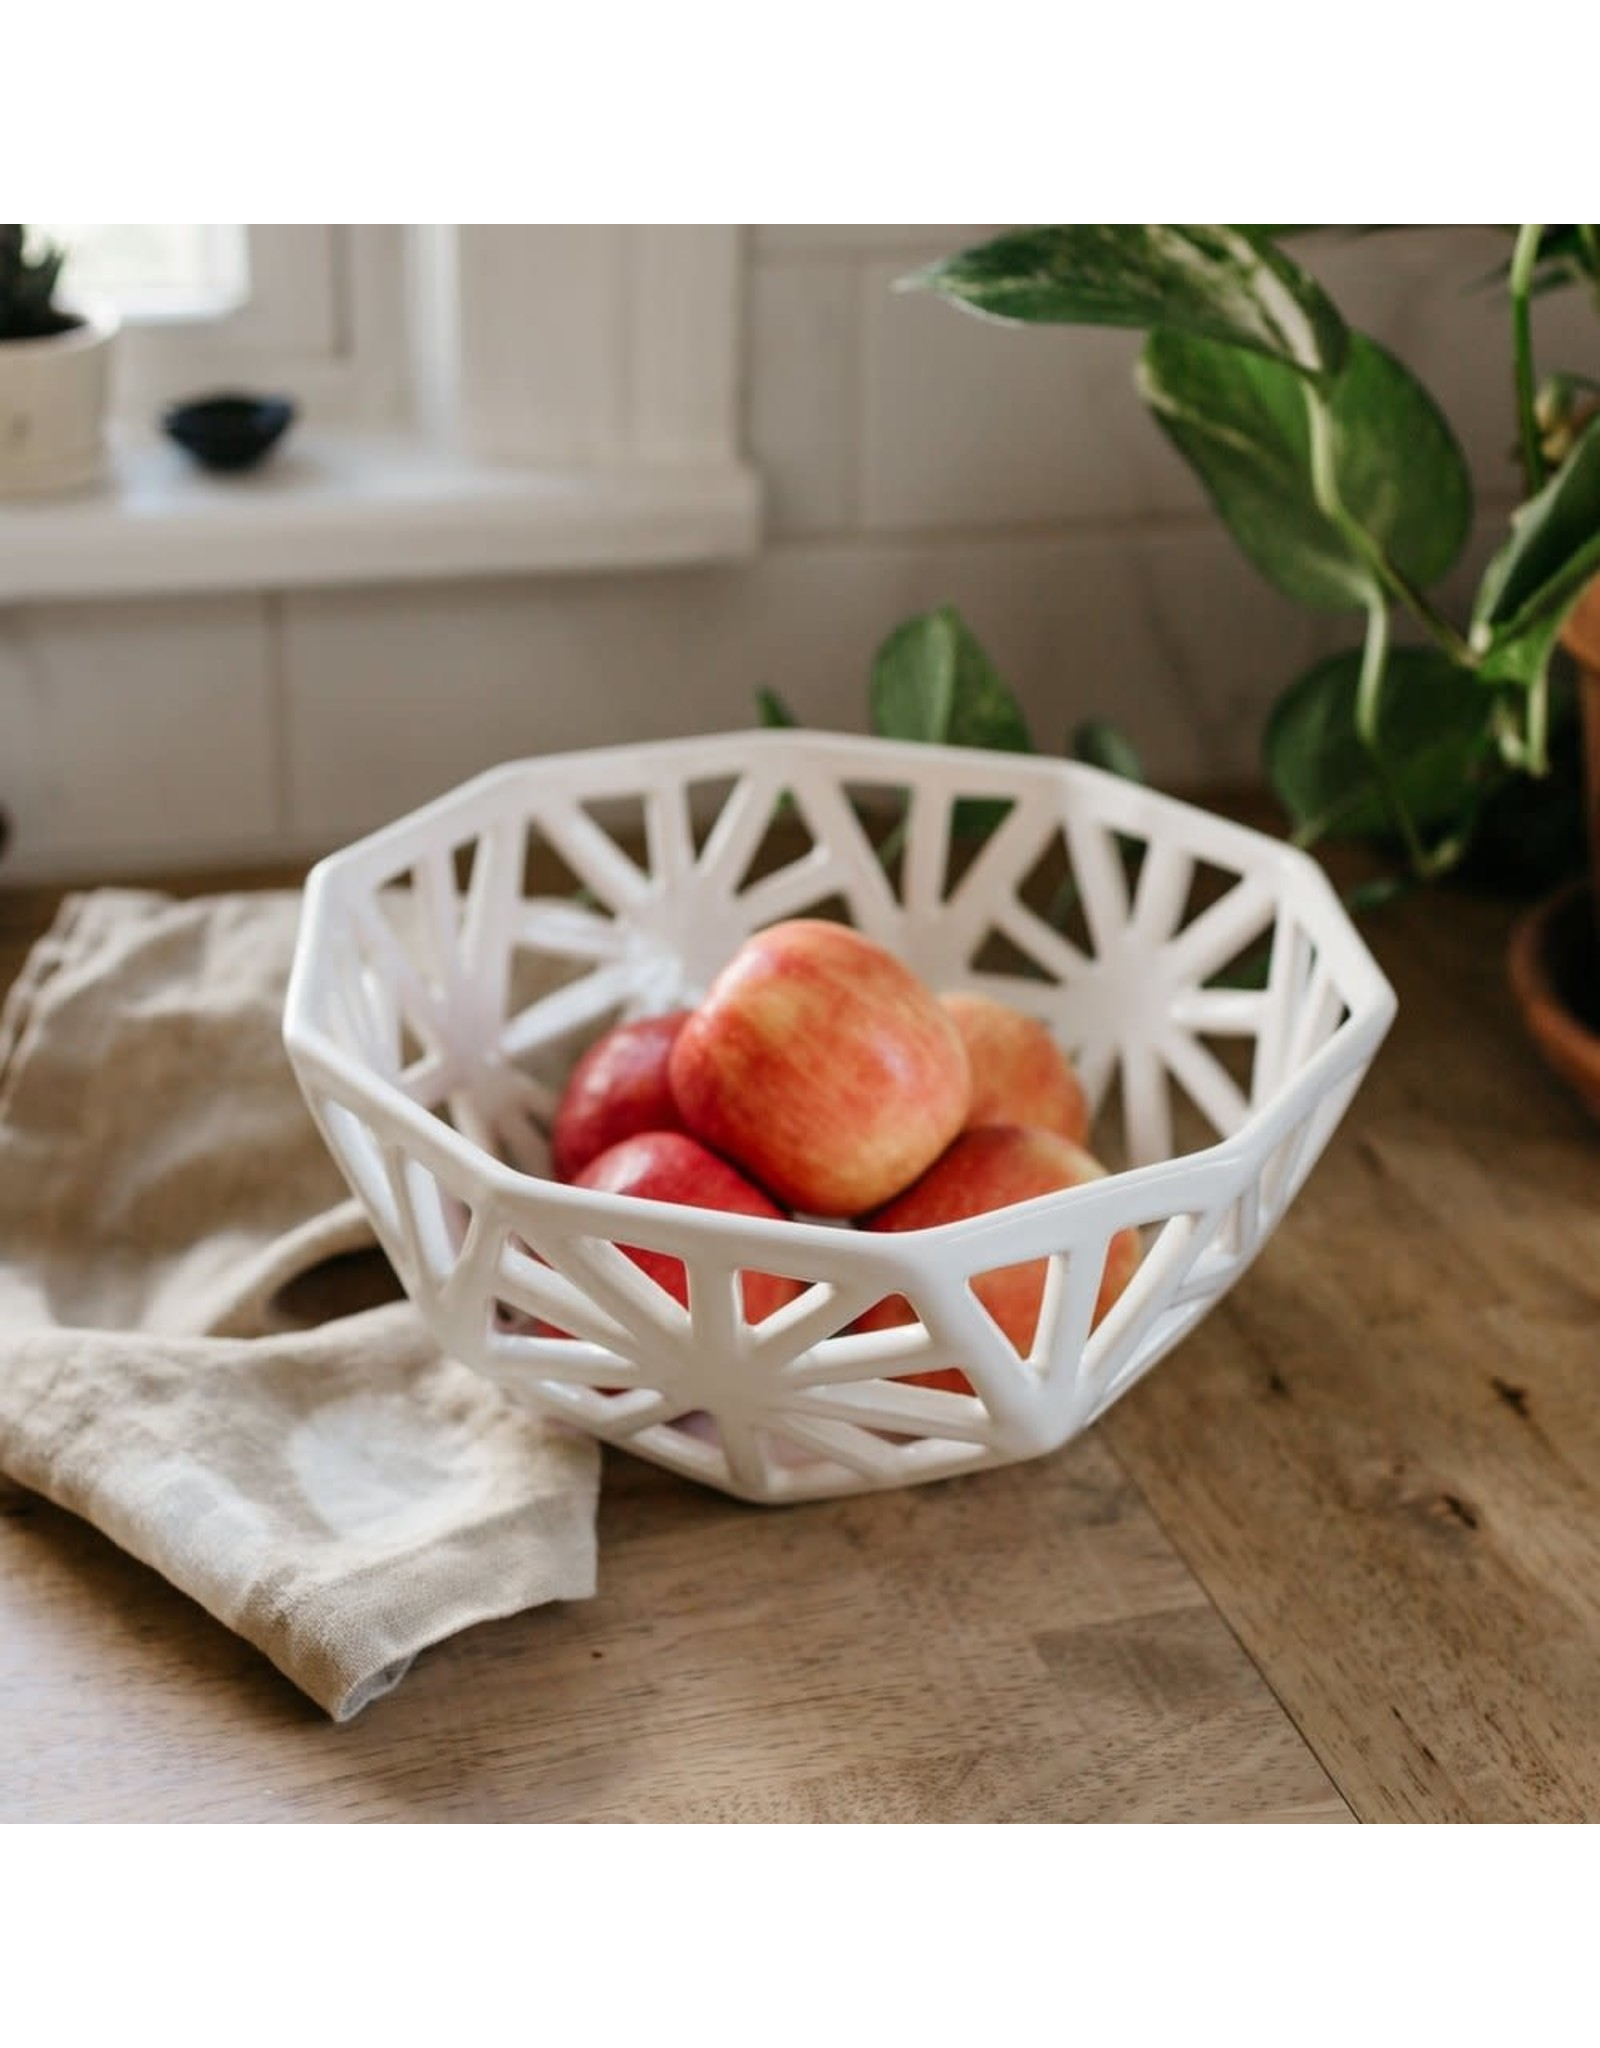 Geodesic Fruit Bowl